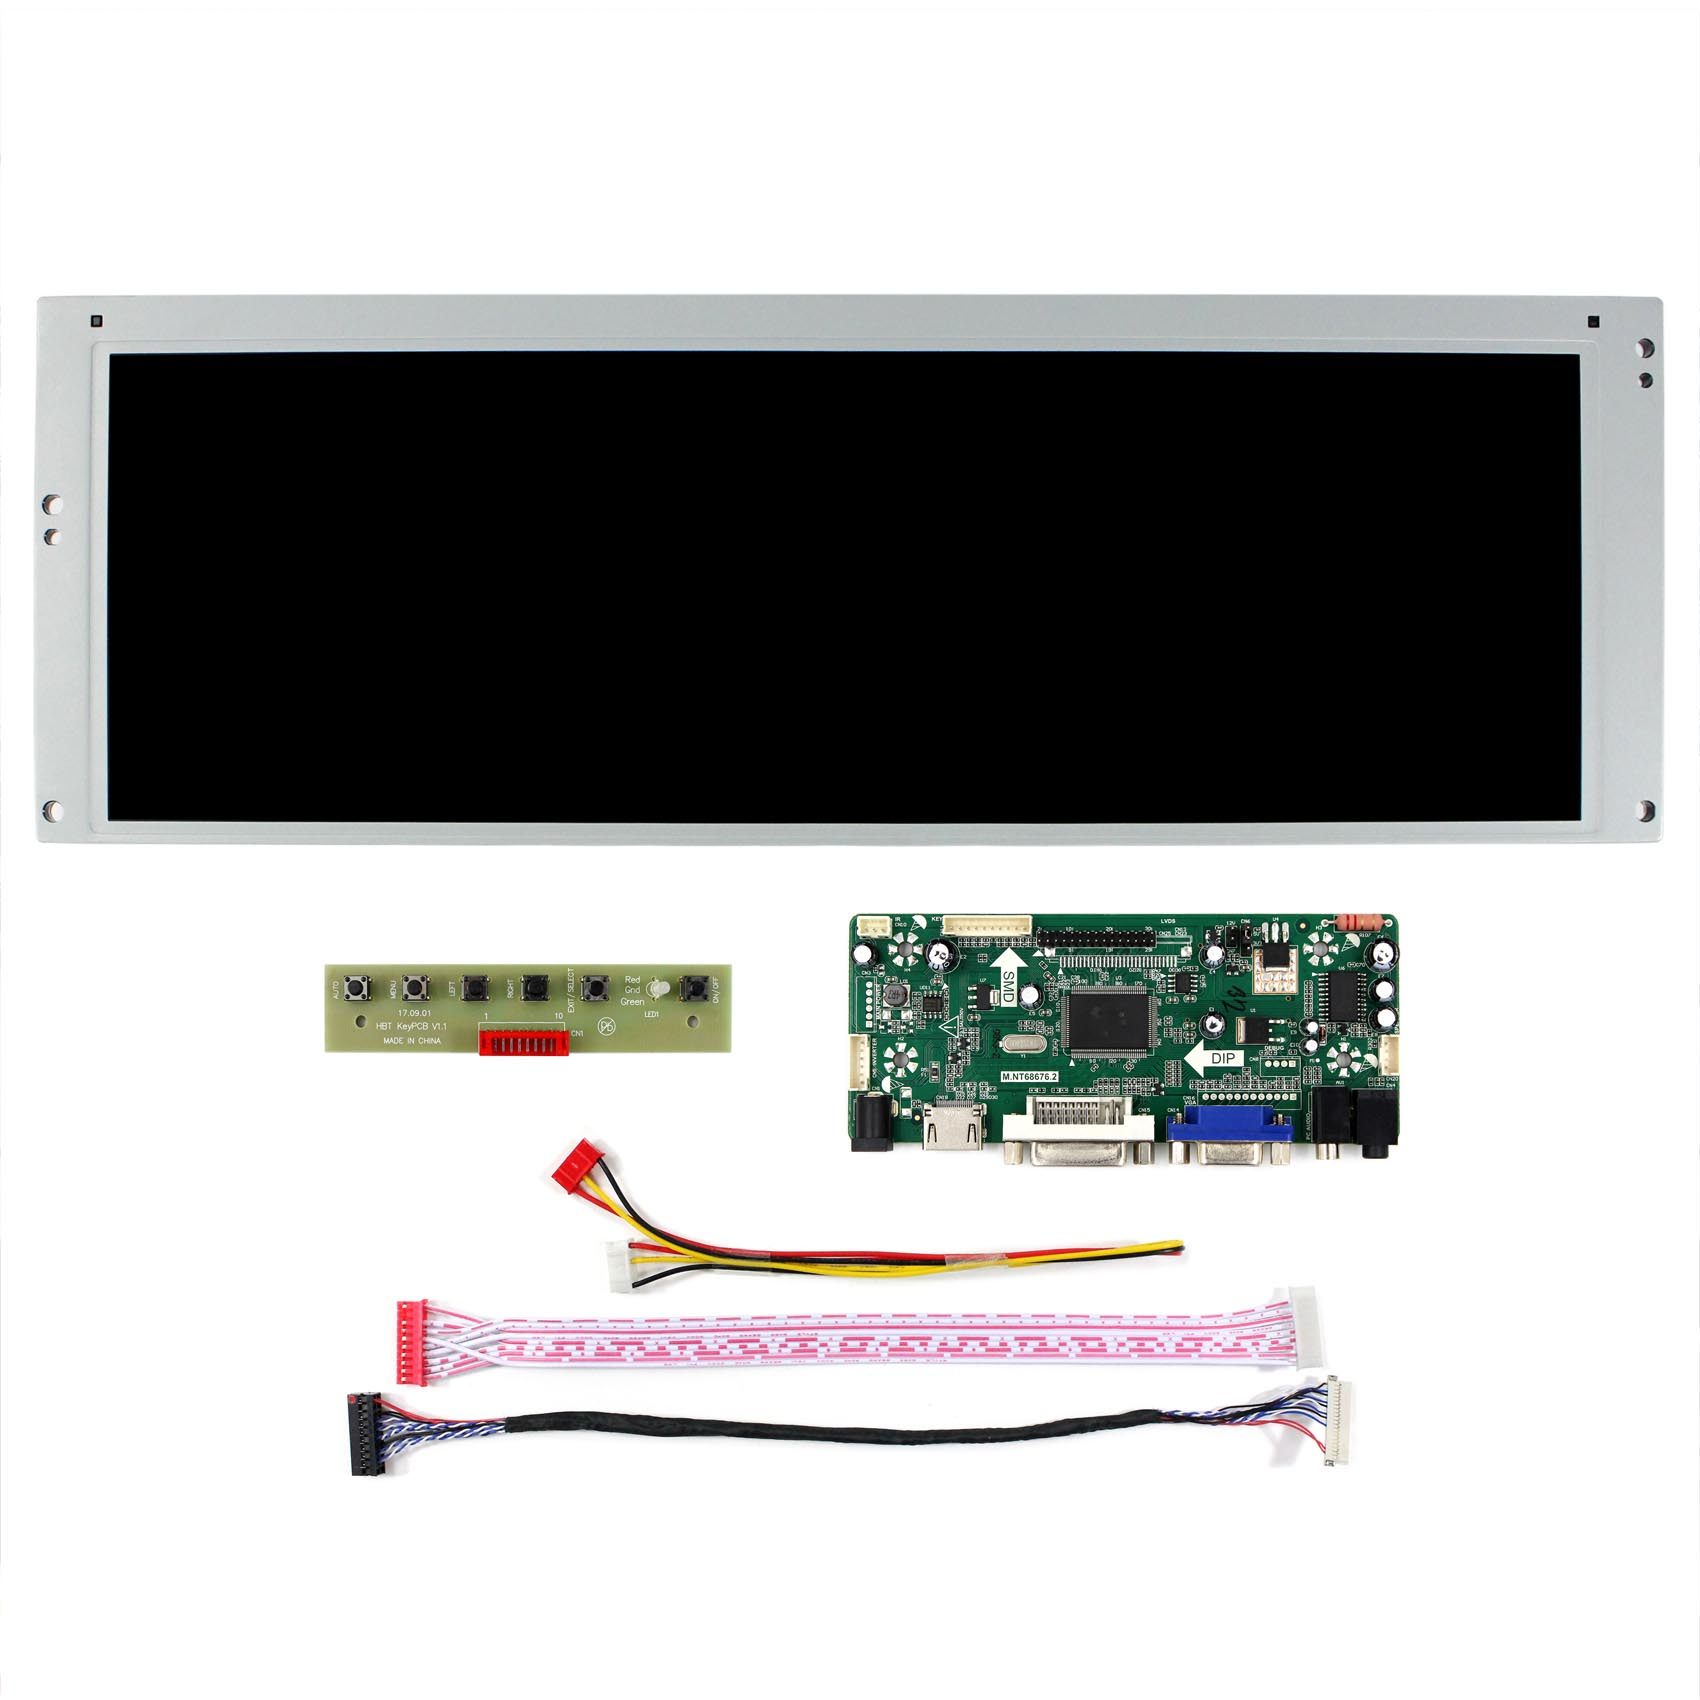 Image 2 - HDMI VGA DVI LCD controller board with 14.9inch 1280x390 LTA149B780F LCD screen-in Replacement Parts & Accessories from Consumer Electronics